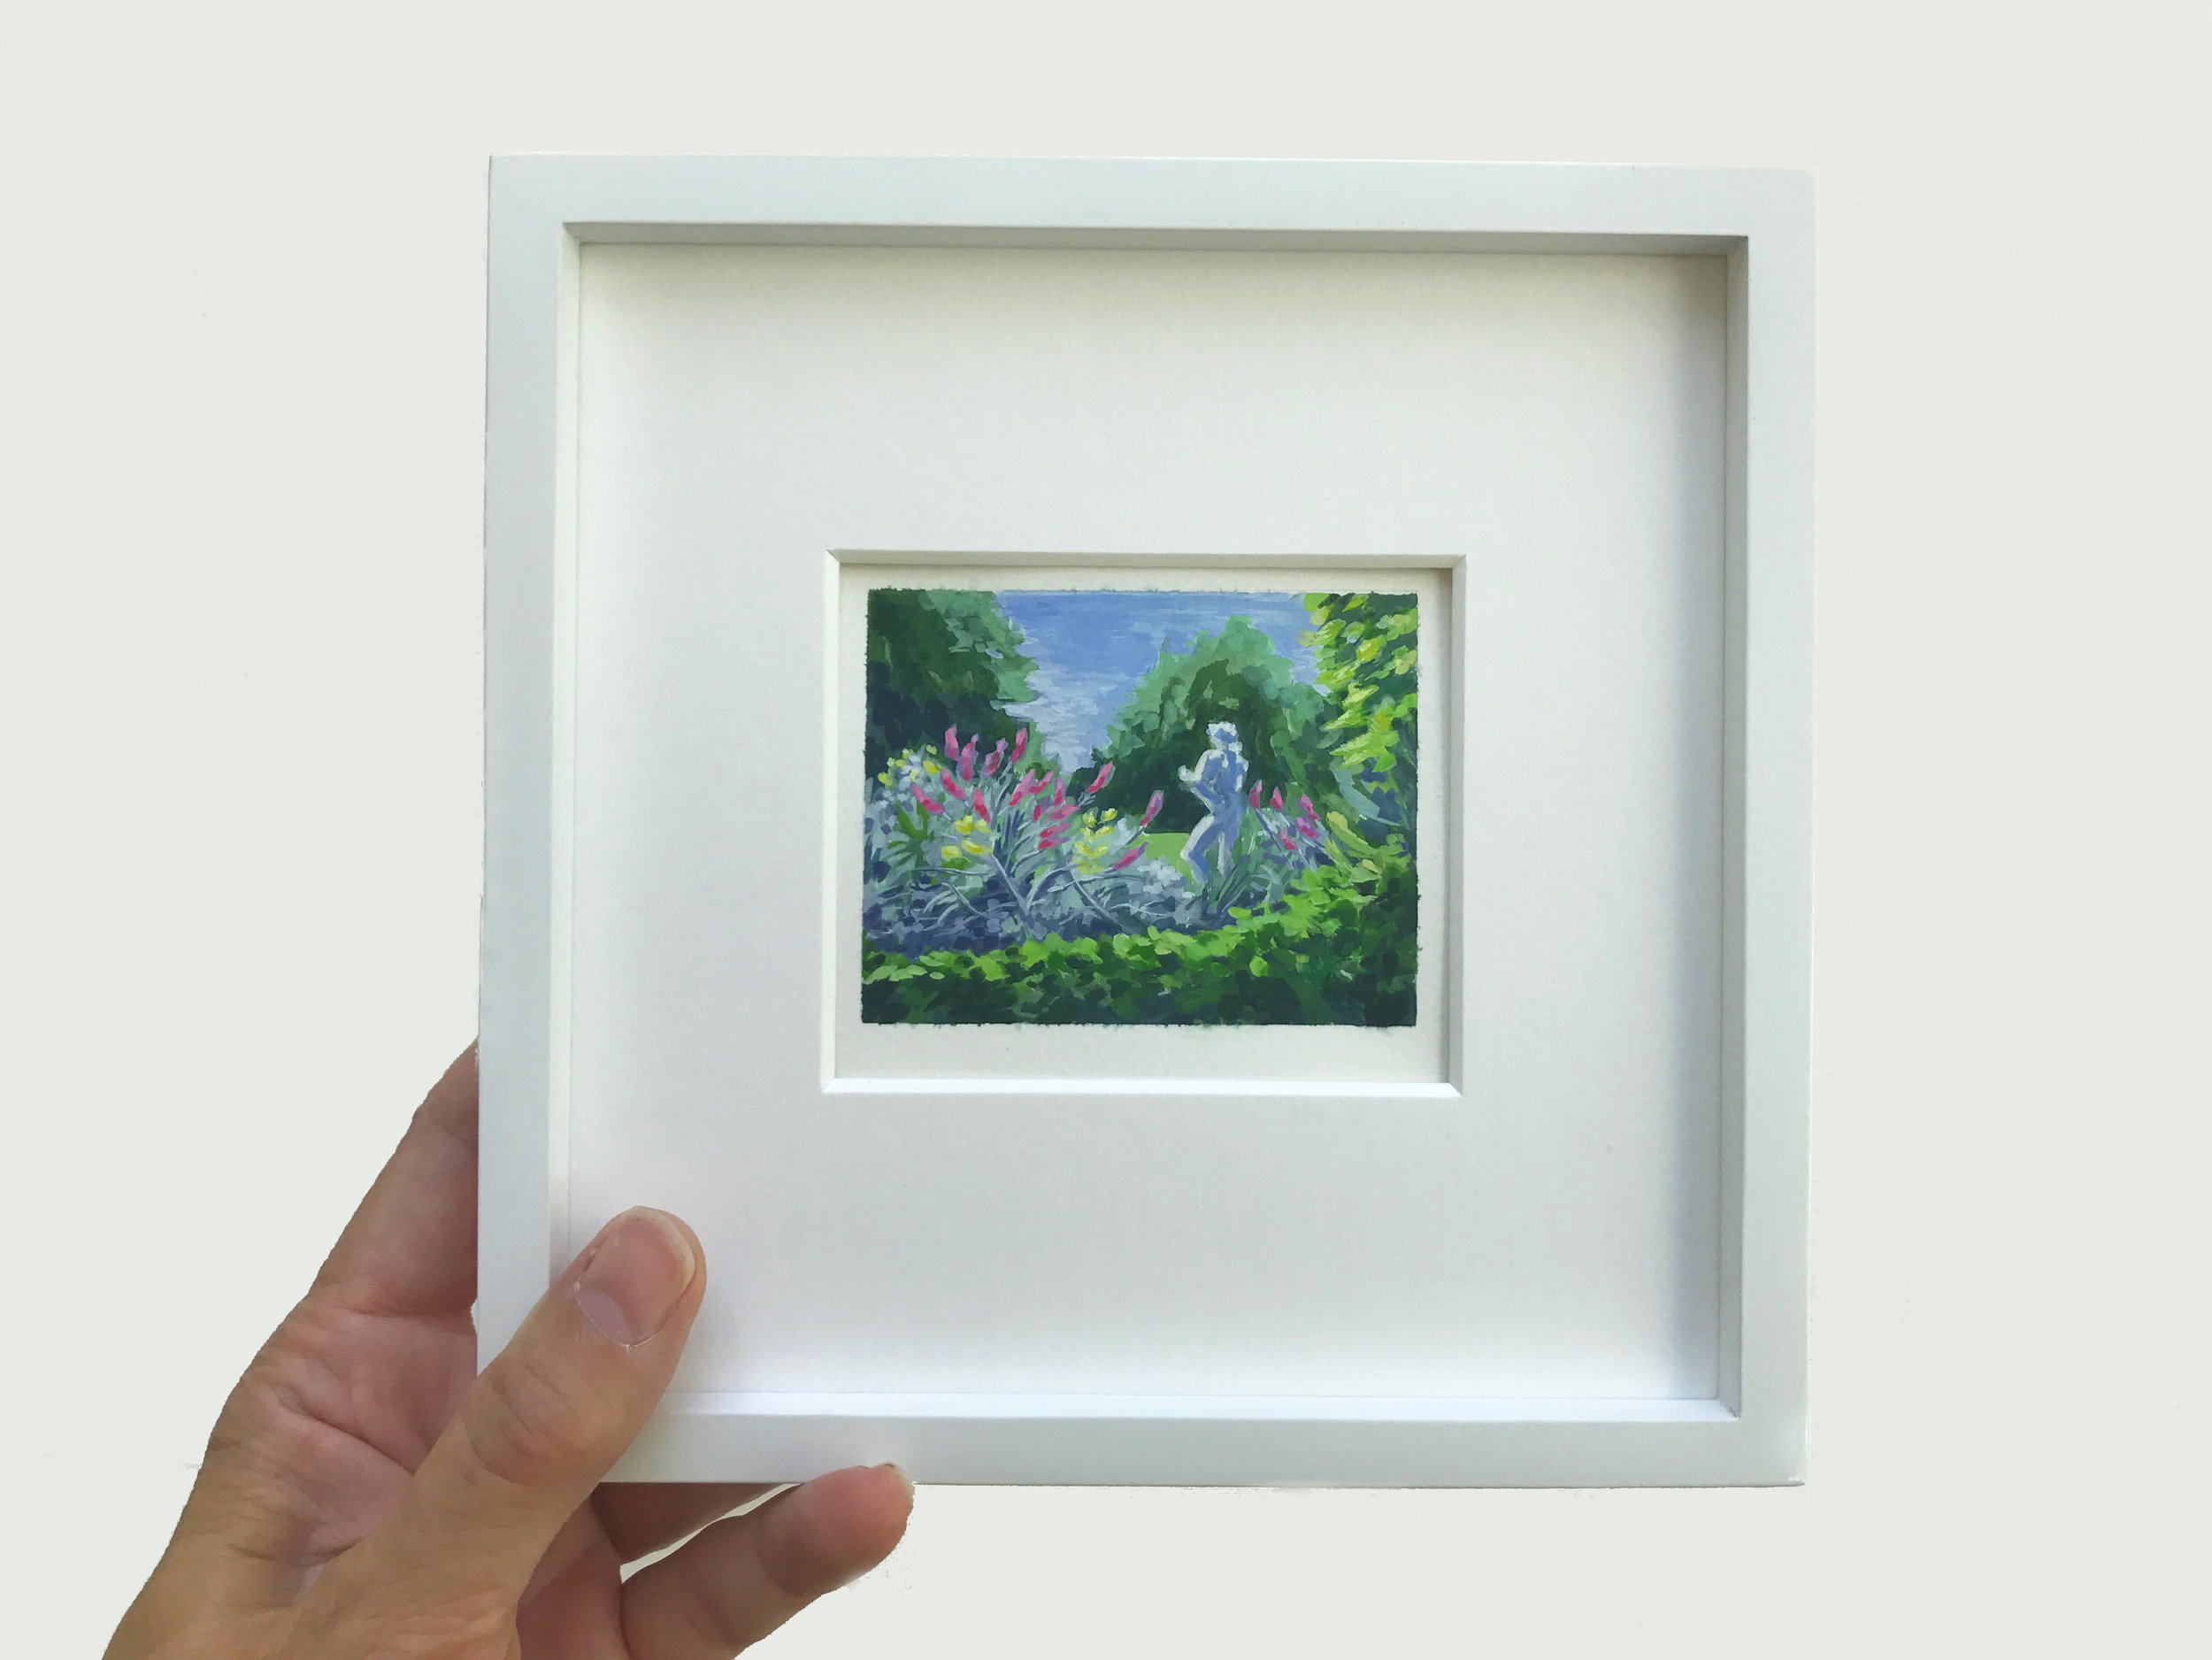 Miniature 2x3 inches plein air painting at The Huntington Gardens, Pasadena, by My Small Paintings